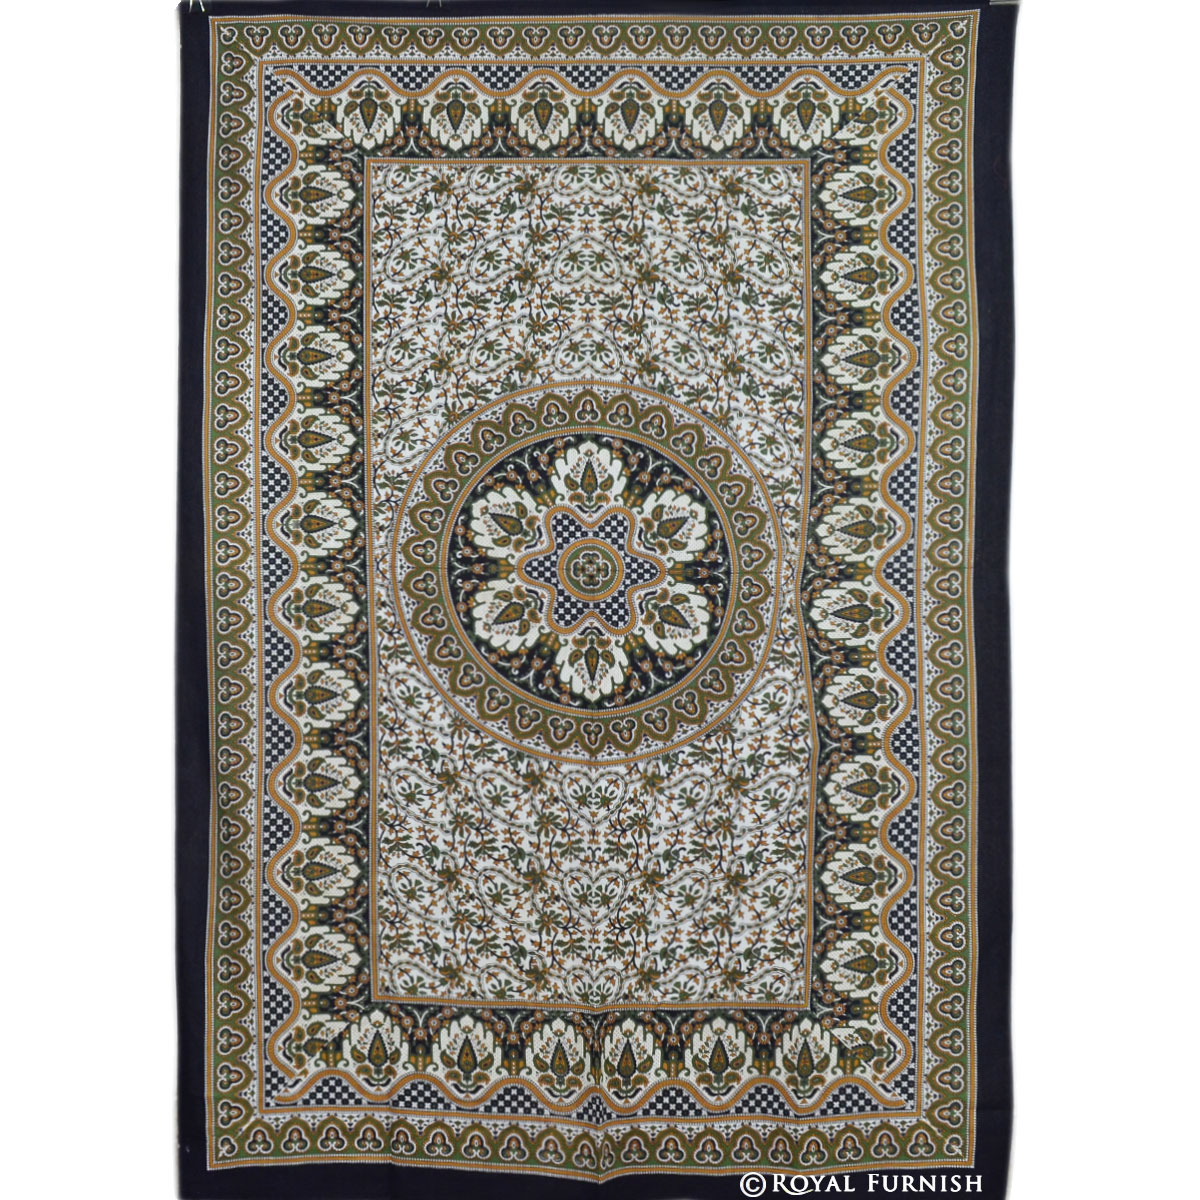 Decorative Wall Hanging Tapestry : Twin size indian handloom mandala tapestry wall hanging